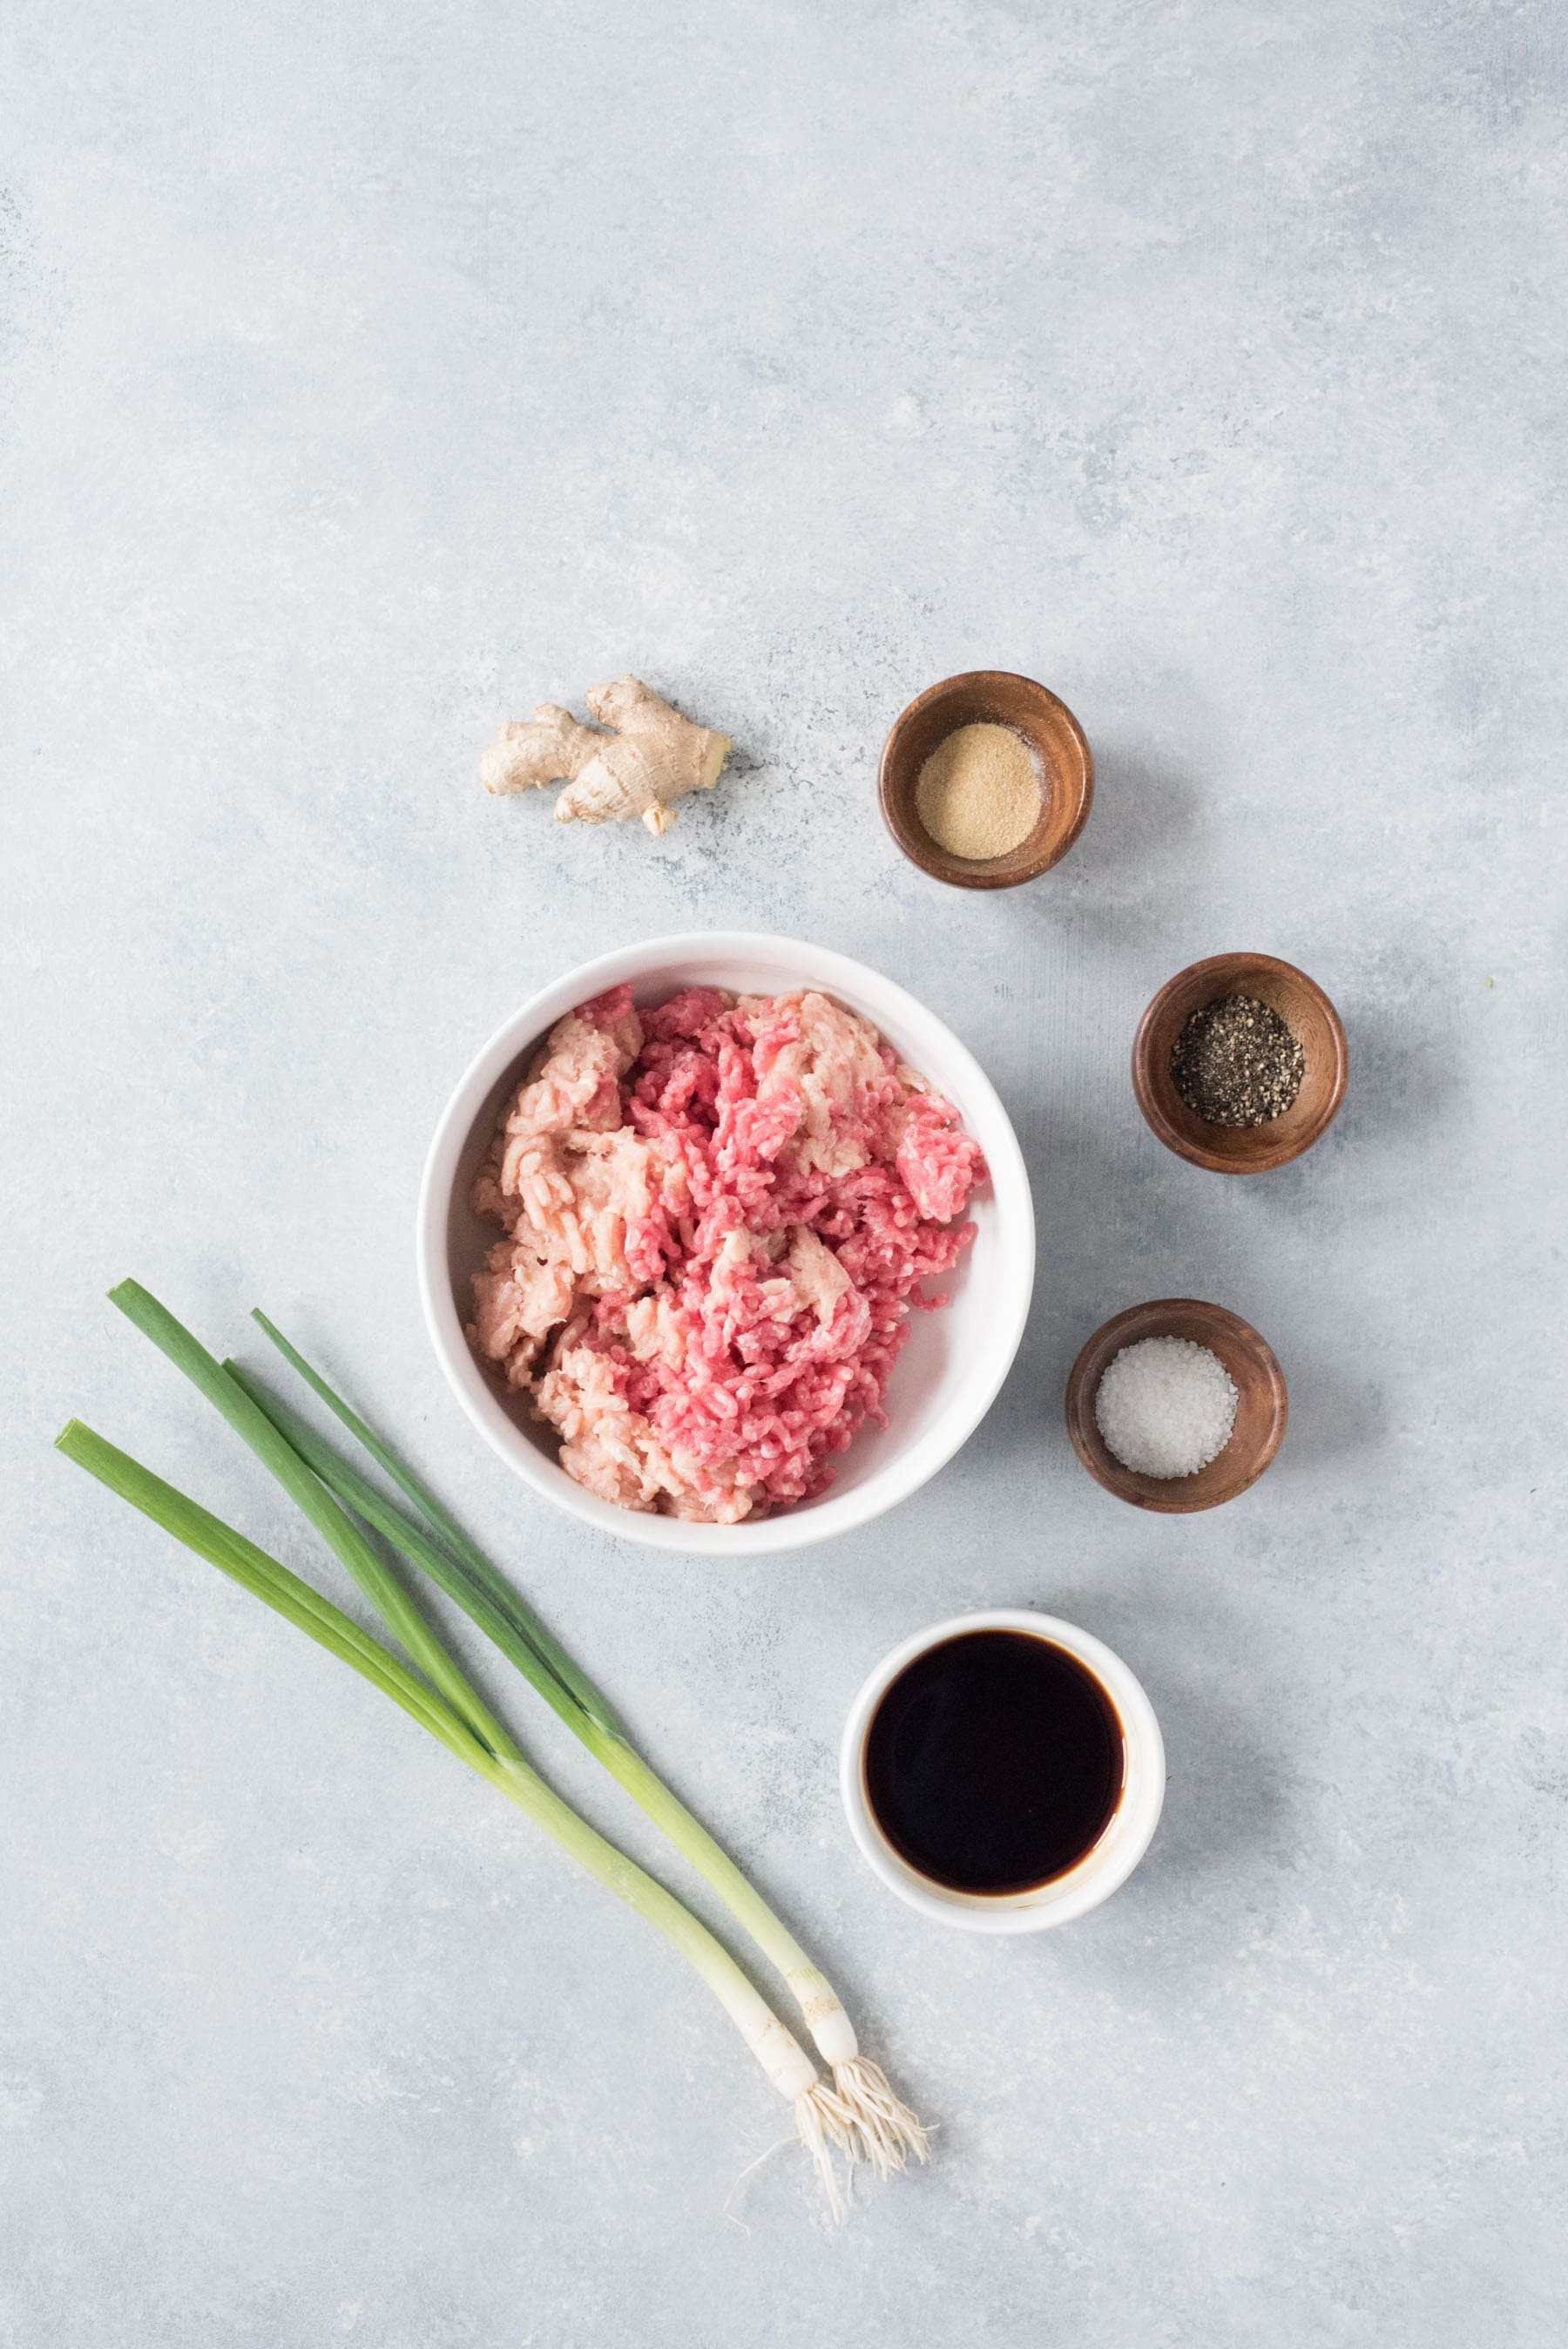 Overhead shot of ingredients for Asian pork burgers - ground pork and chicken, soy sauce, green onions, ginger, and spices